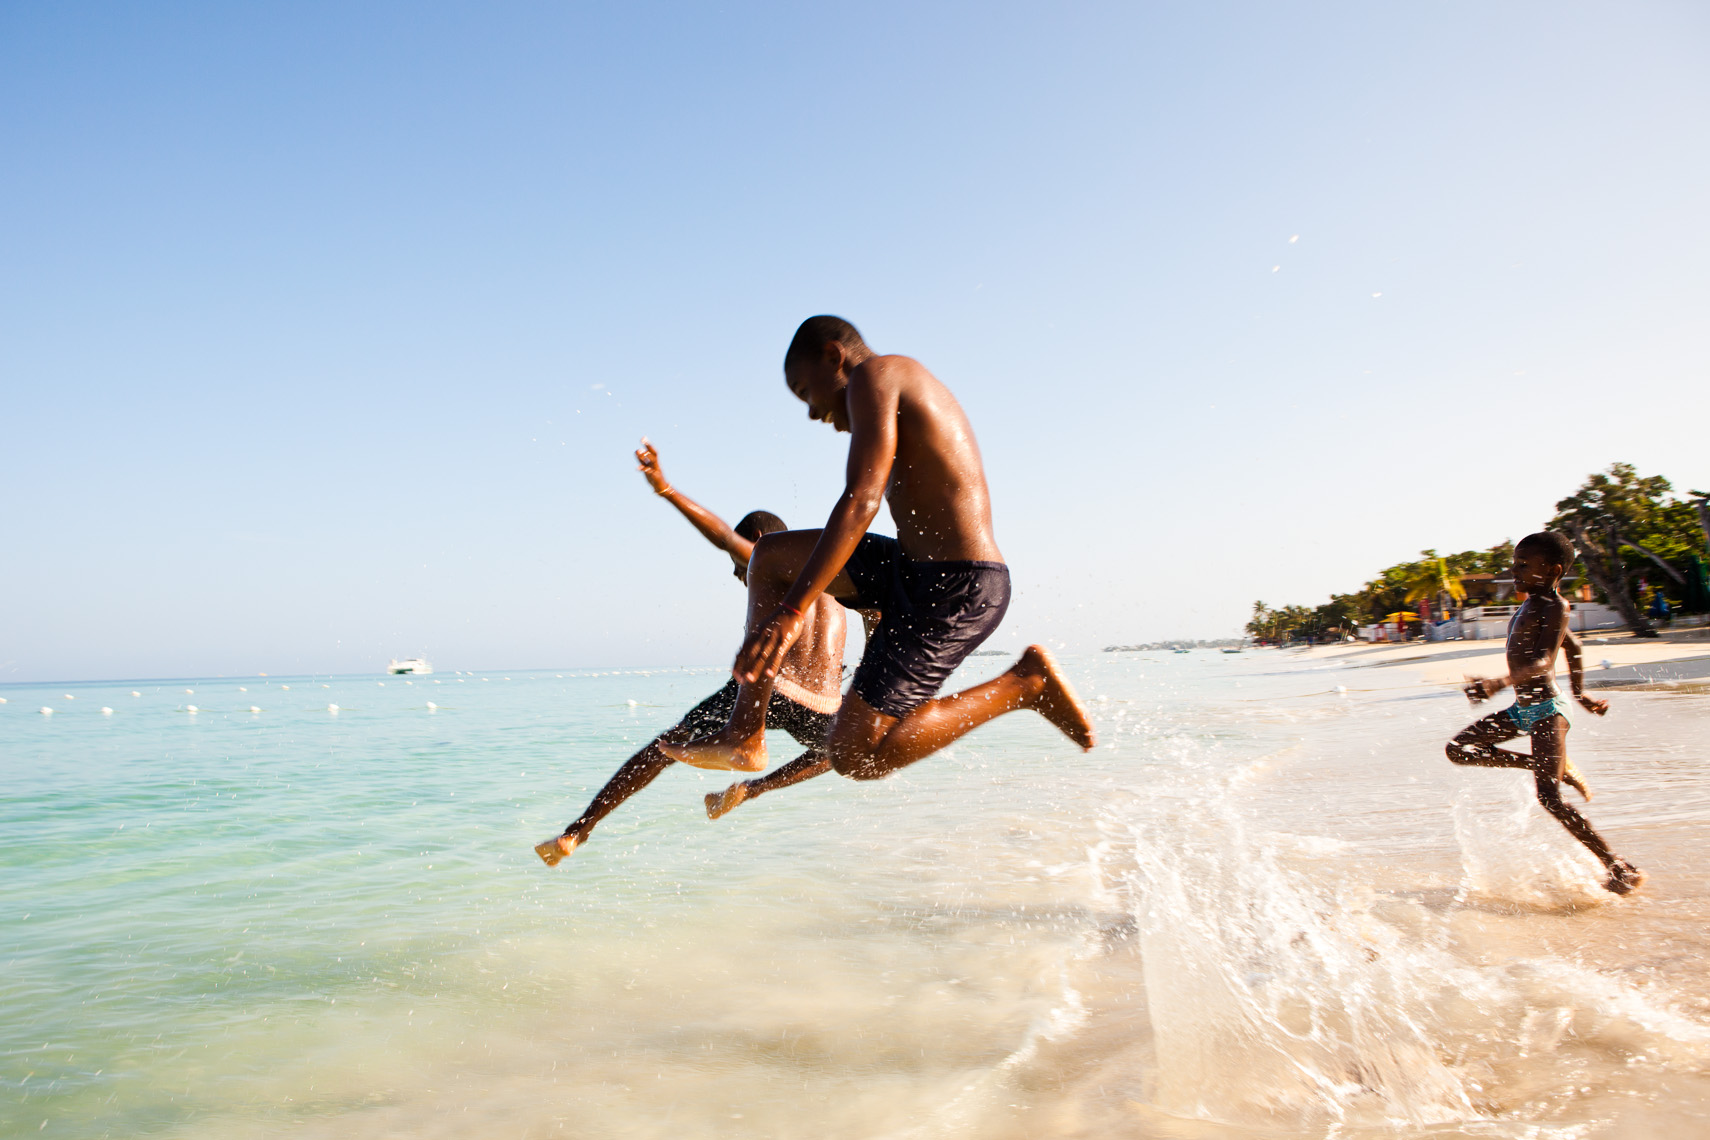 Jamaican kids jumping in ocean.